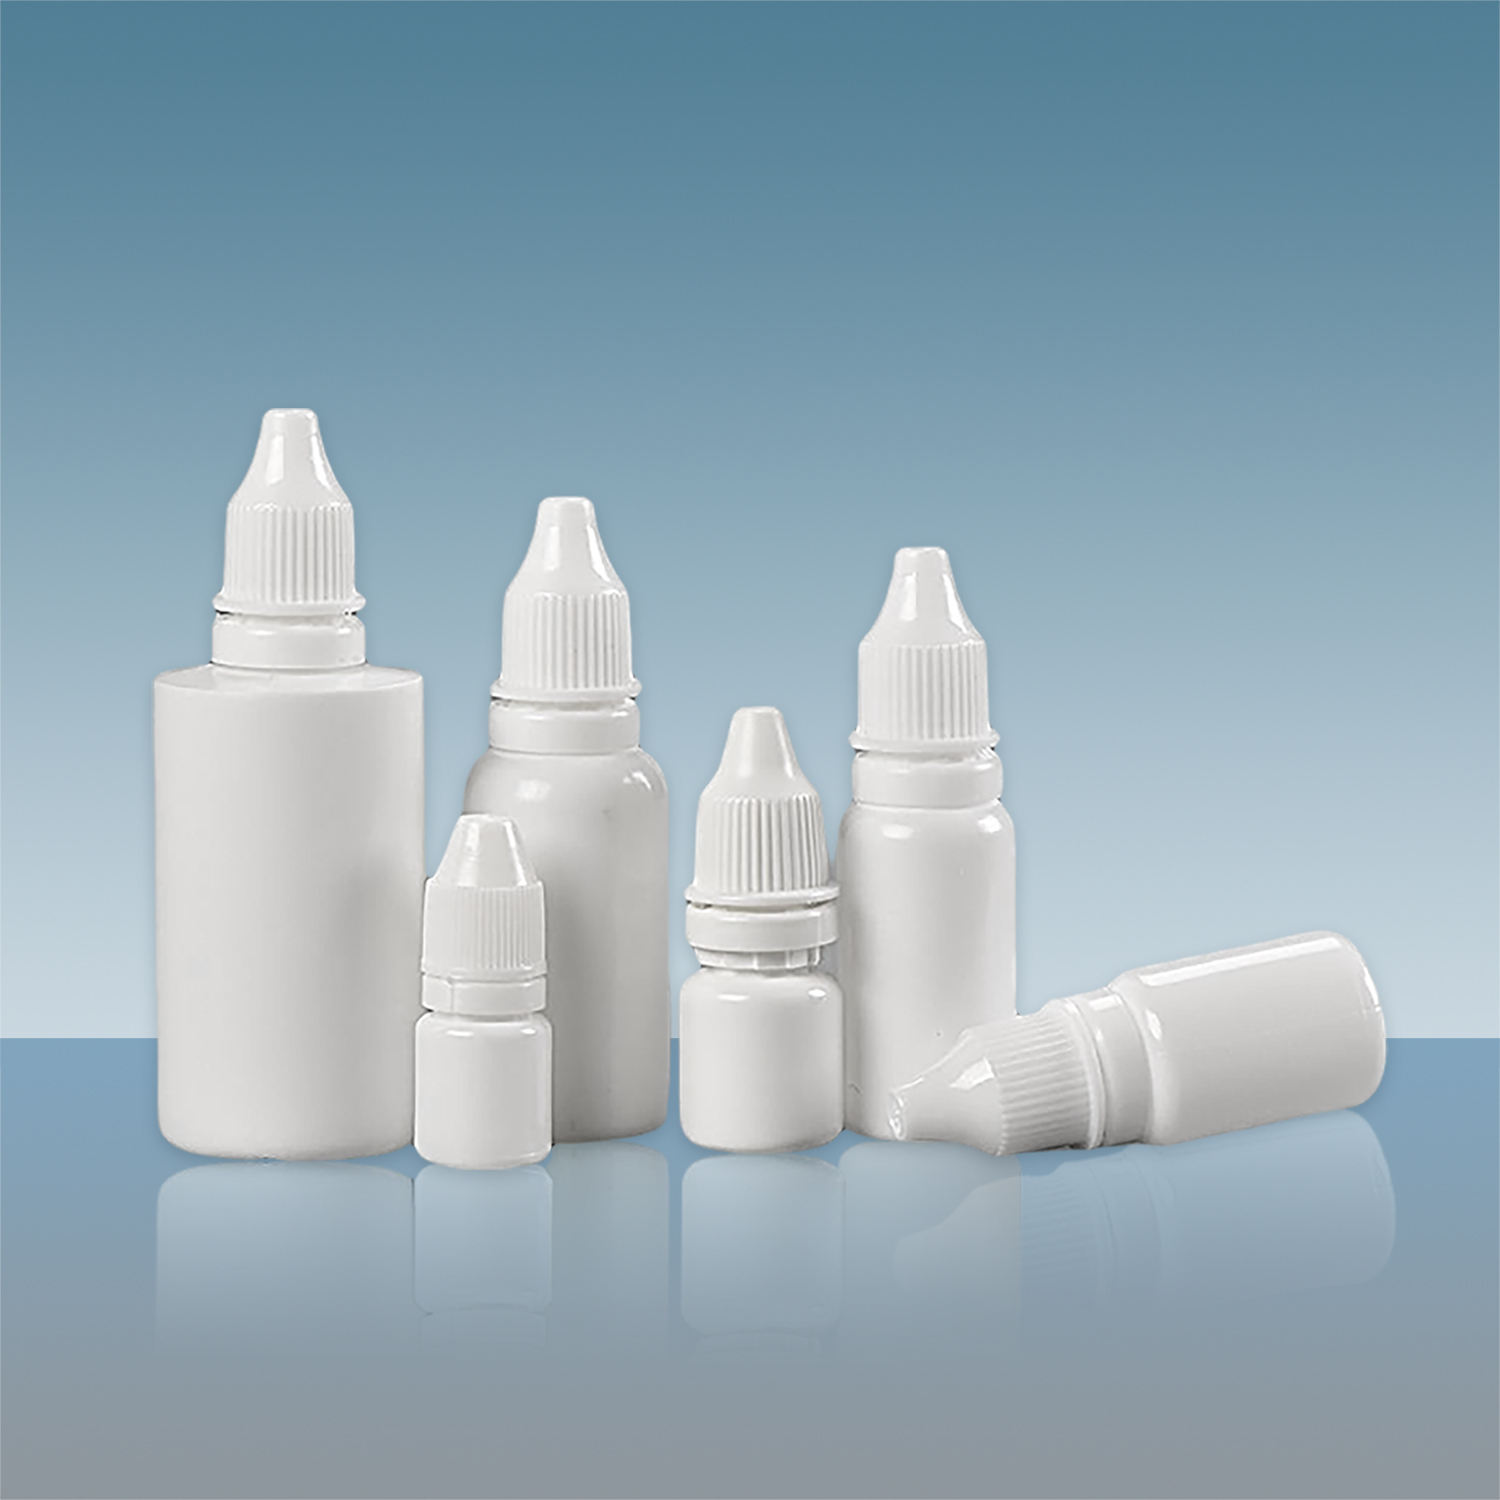 TUV Certification 2ml 5ml 10ml 15ml 30ml 50ml Plastic LDPE Dropper Bottles With Tamperproof Cap